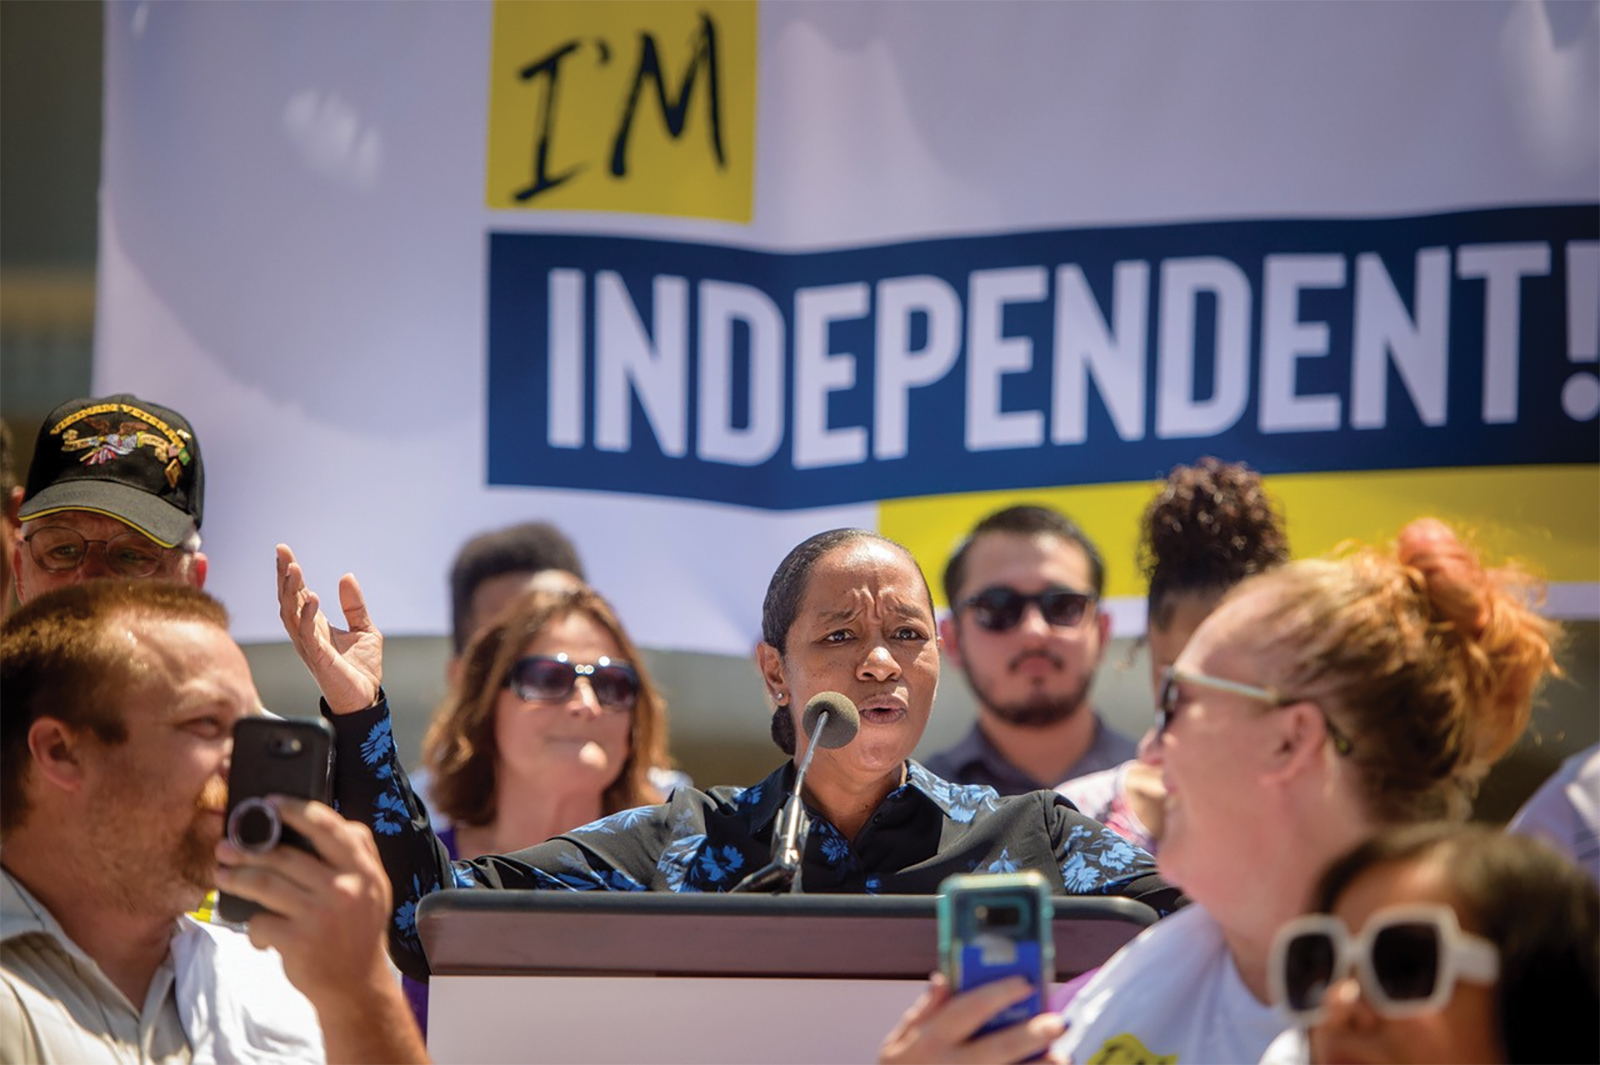 Kee Broussard an on demand delivery driver from the Los Angeles area at the State Capital rally July 16, 2019. (Courtesy Photo)